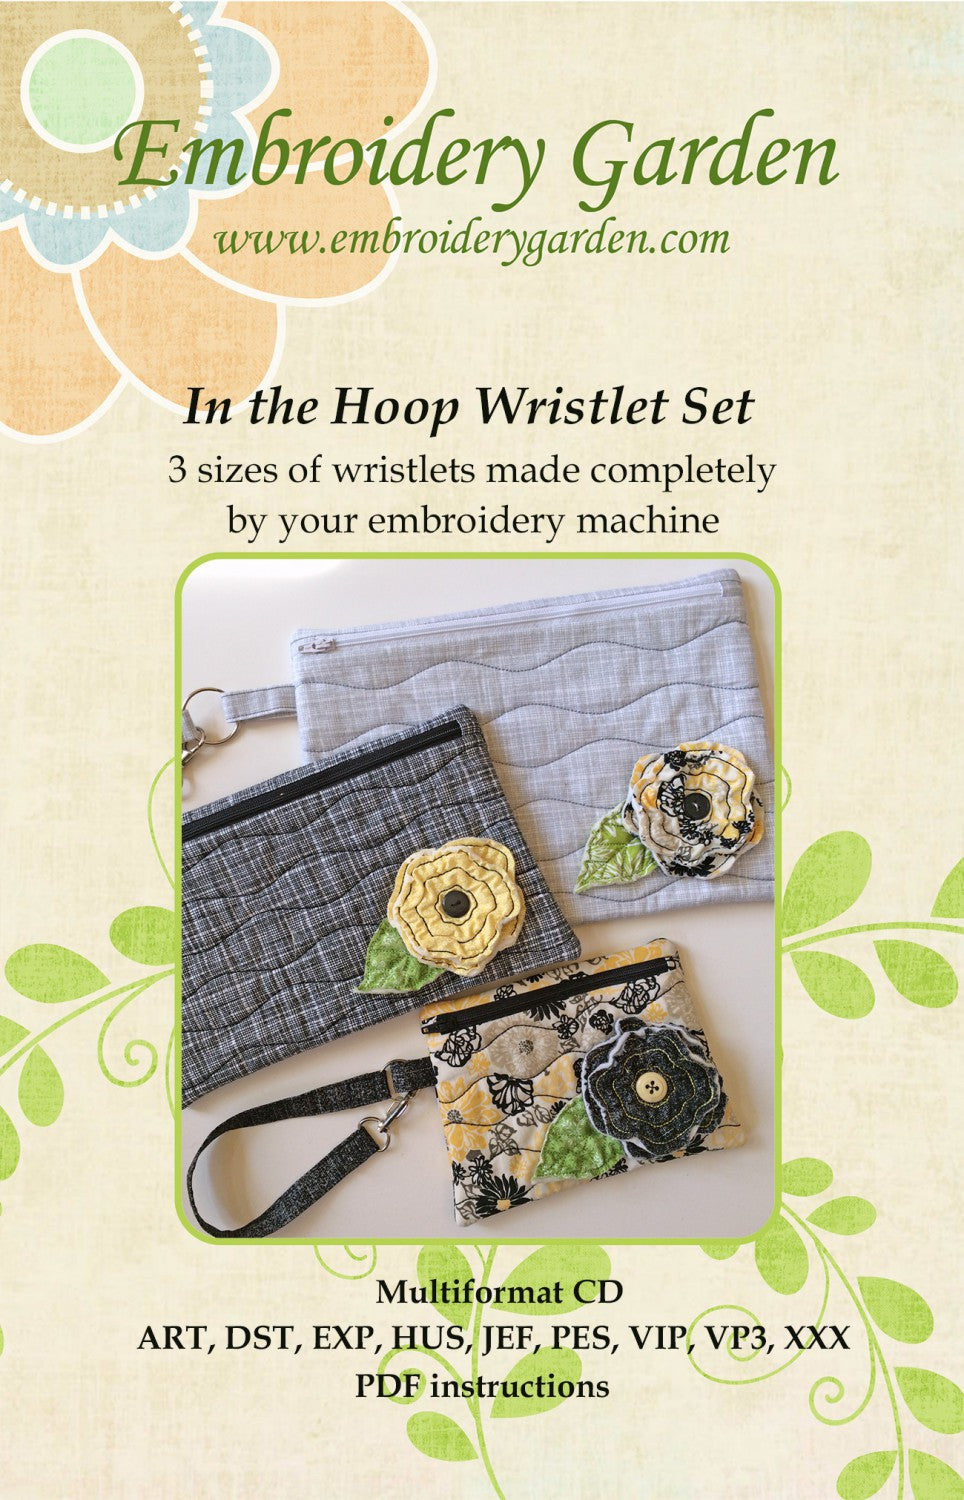 Embroidery Garden In the Hoop Wristlet Set